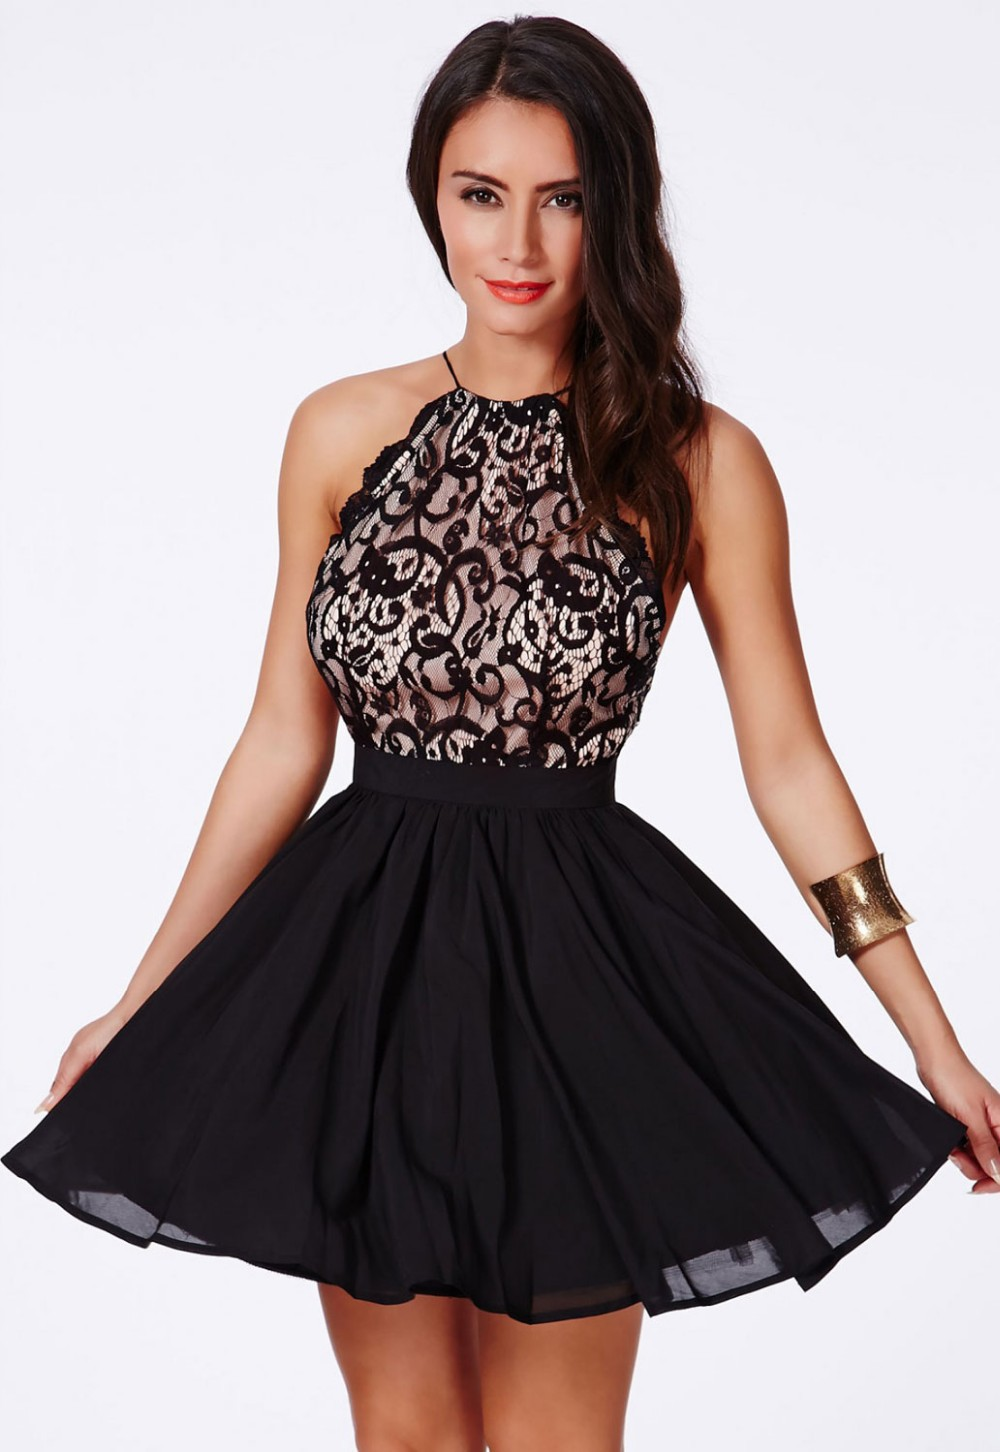 Short Black Halter Dress